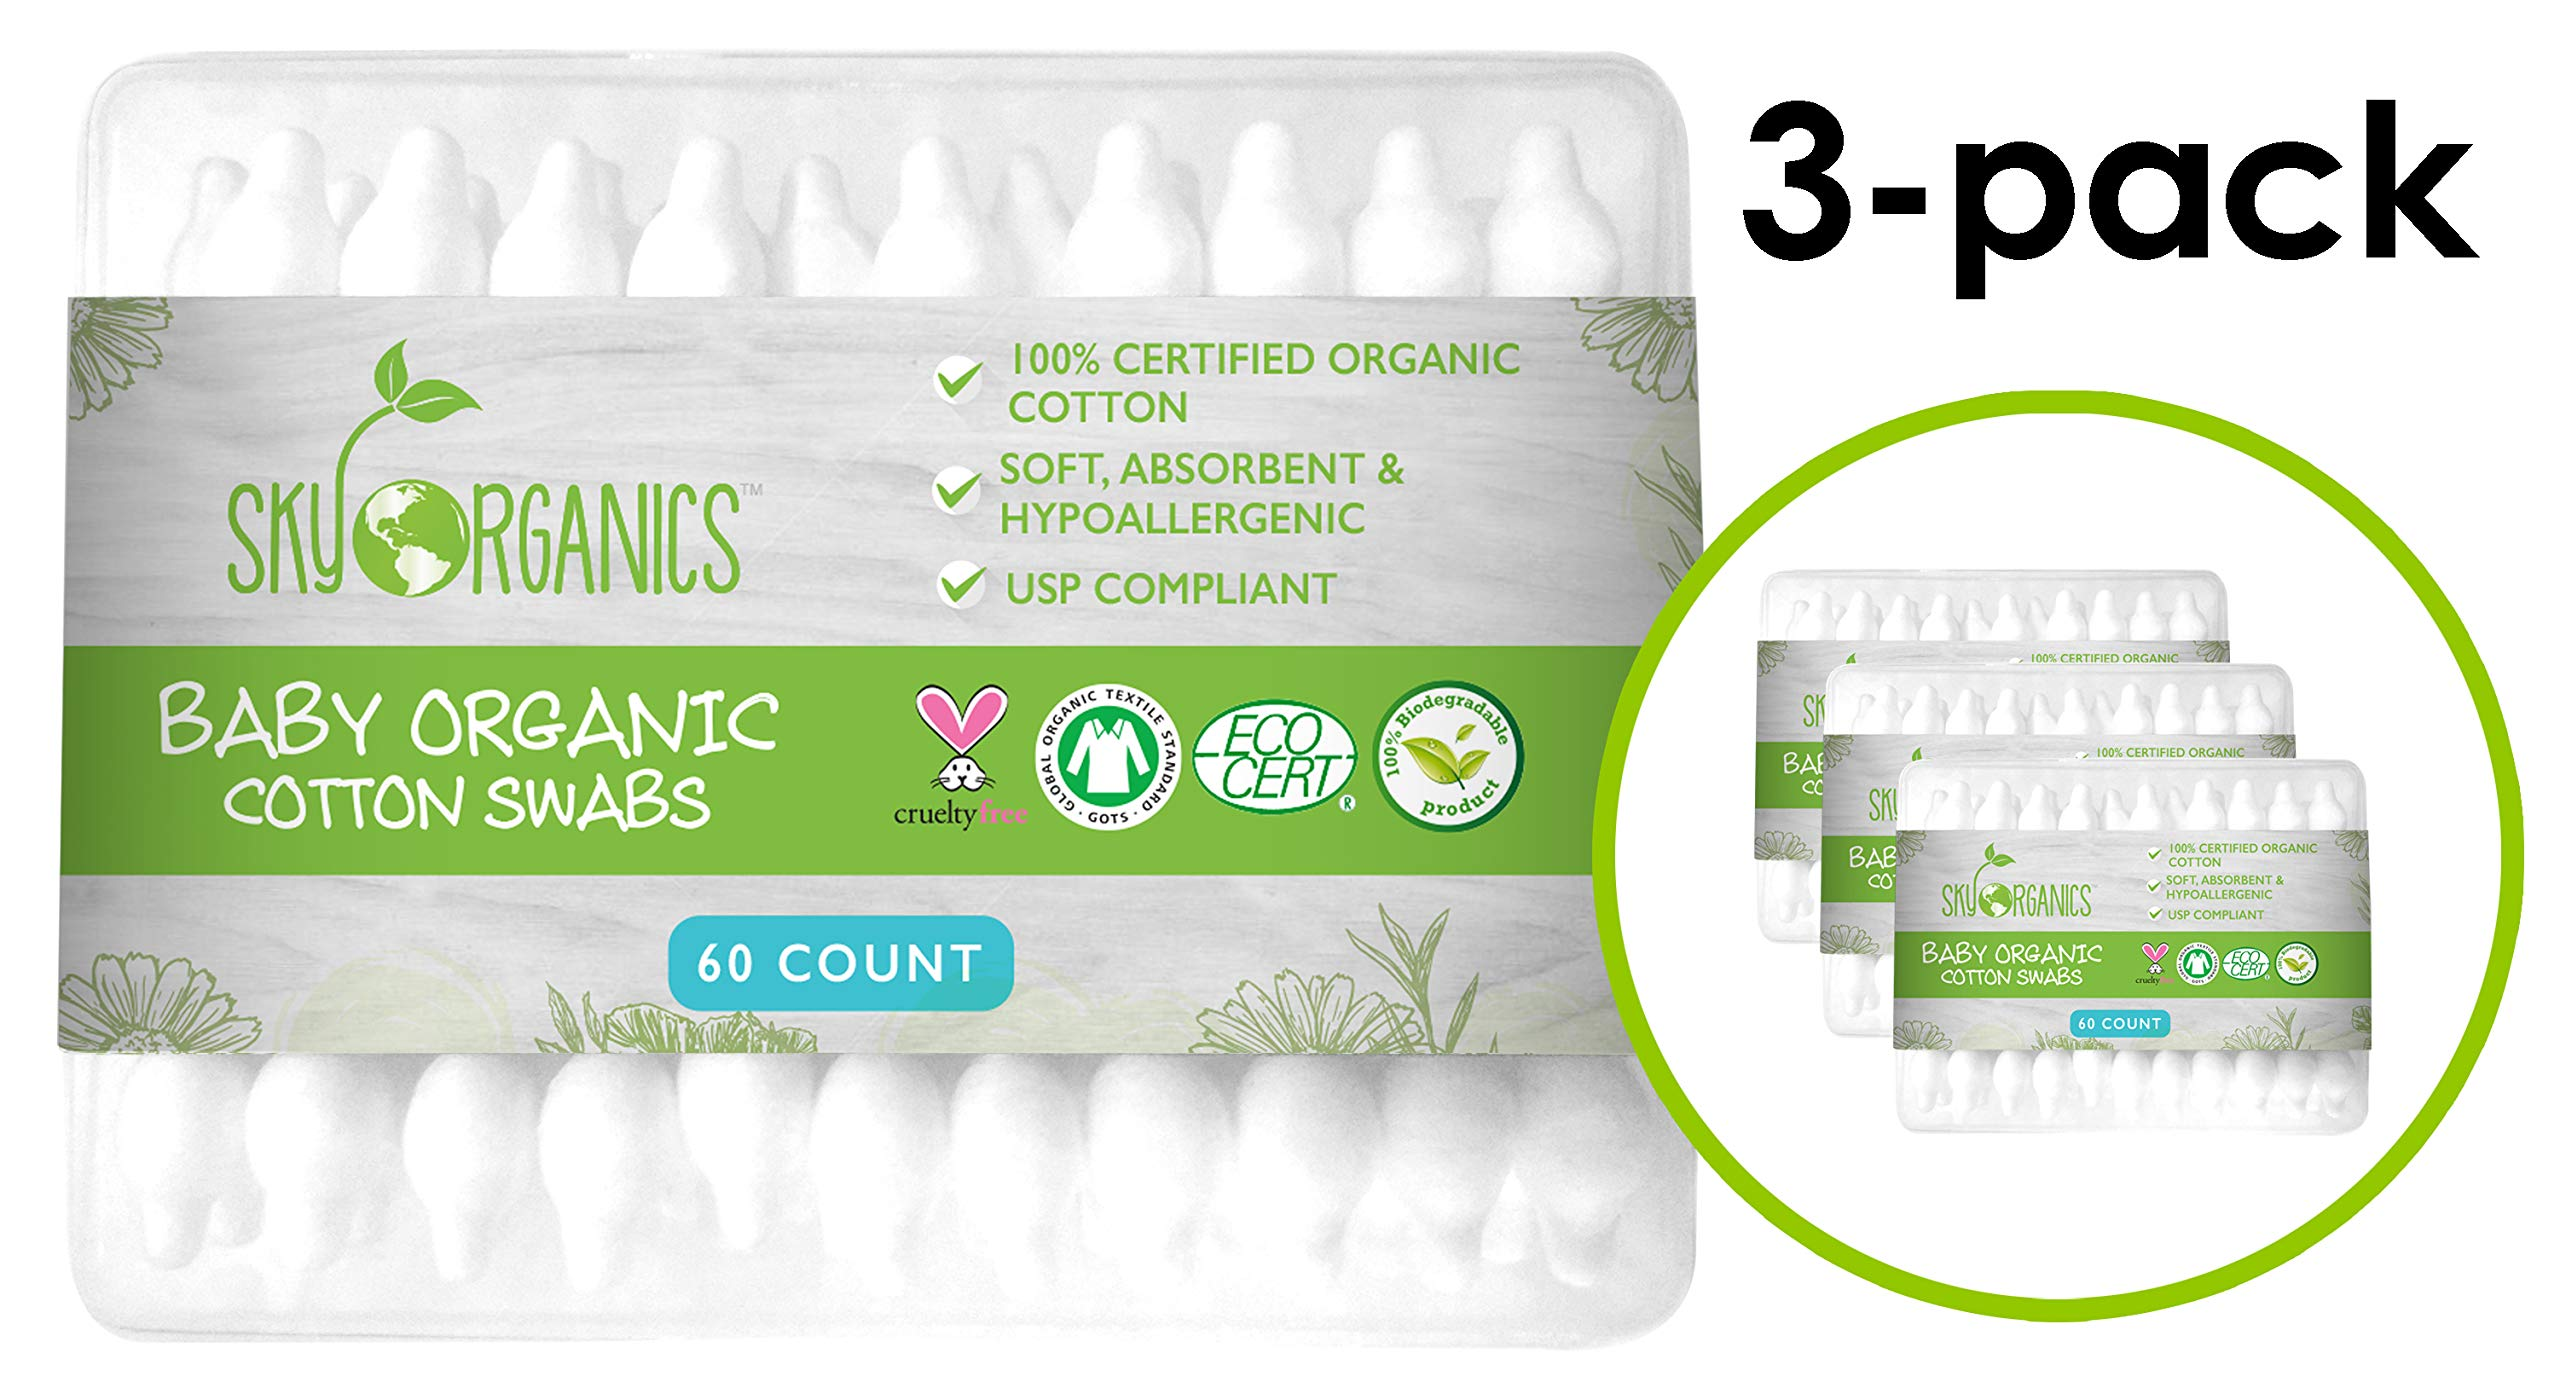 Baby Cotton Swabs (3 packs of 60 ct. Total 180), Organic Fragrance and Chlorine-Free Kids Safety Swabs, 100% Biodegradable Gentle Baby Qtips, Cruelty-Free & Hypoallergenic Children Cotton Buds